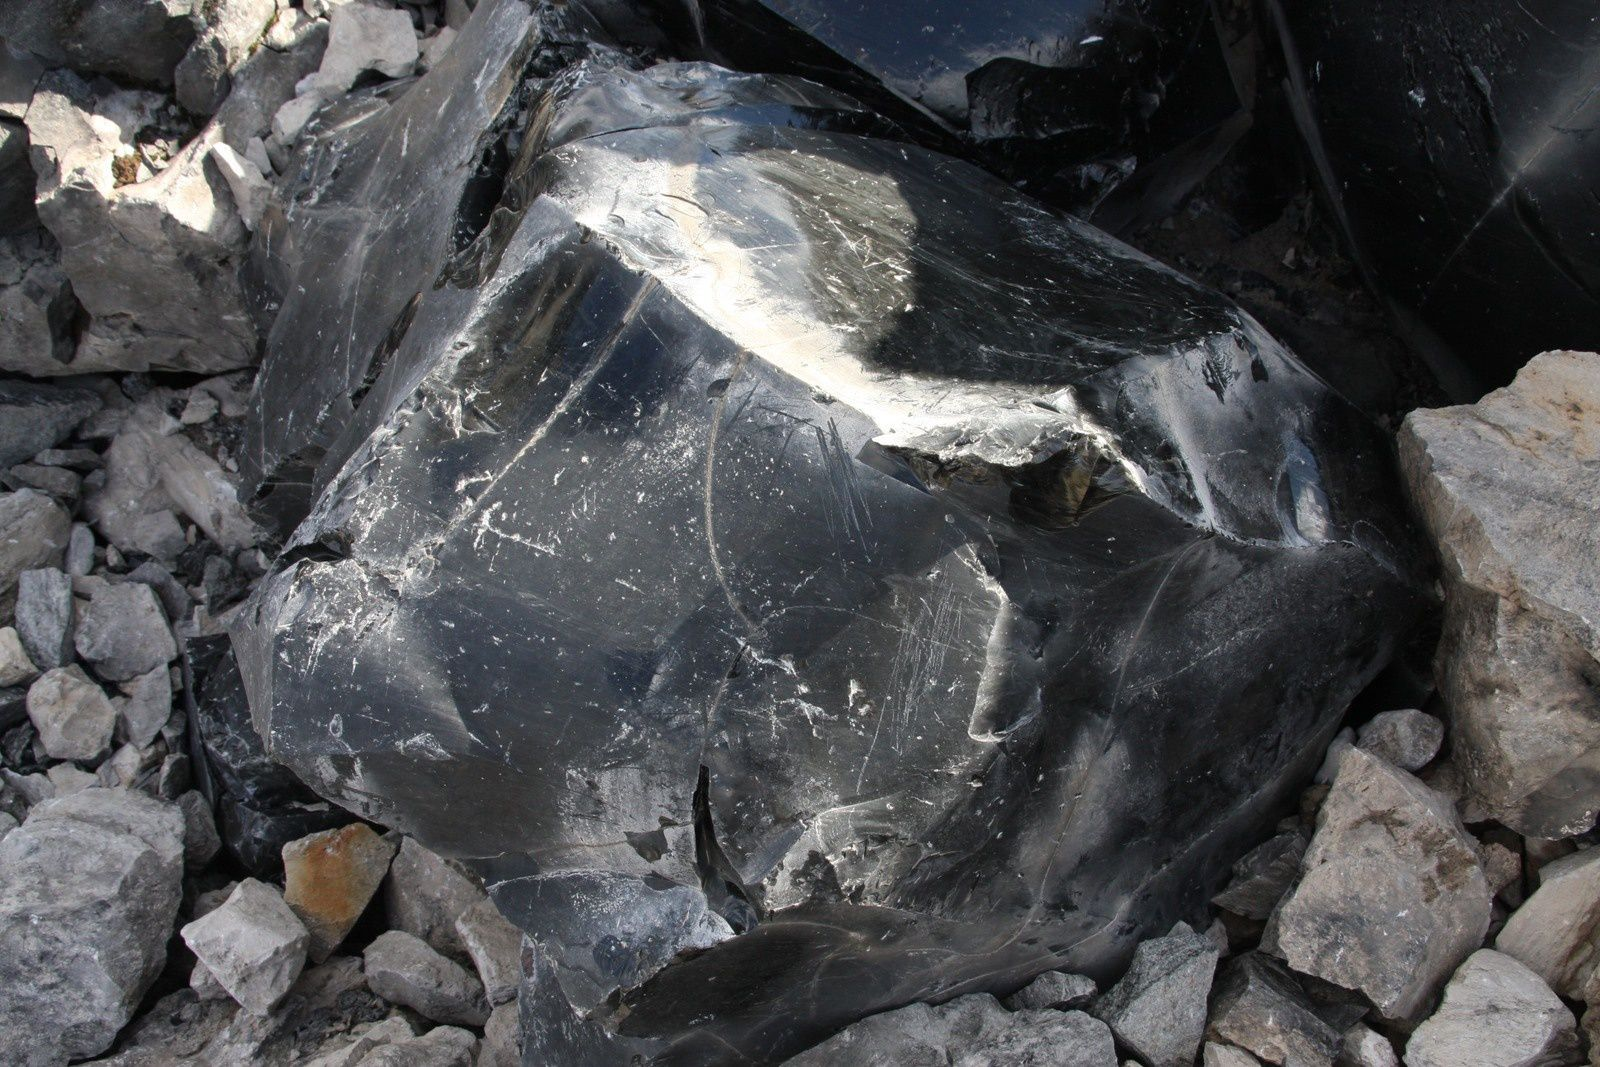 Bloc d'obsidienne - Newberry caldera - photo JM.Mestdagh